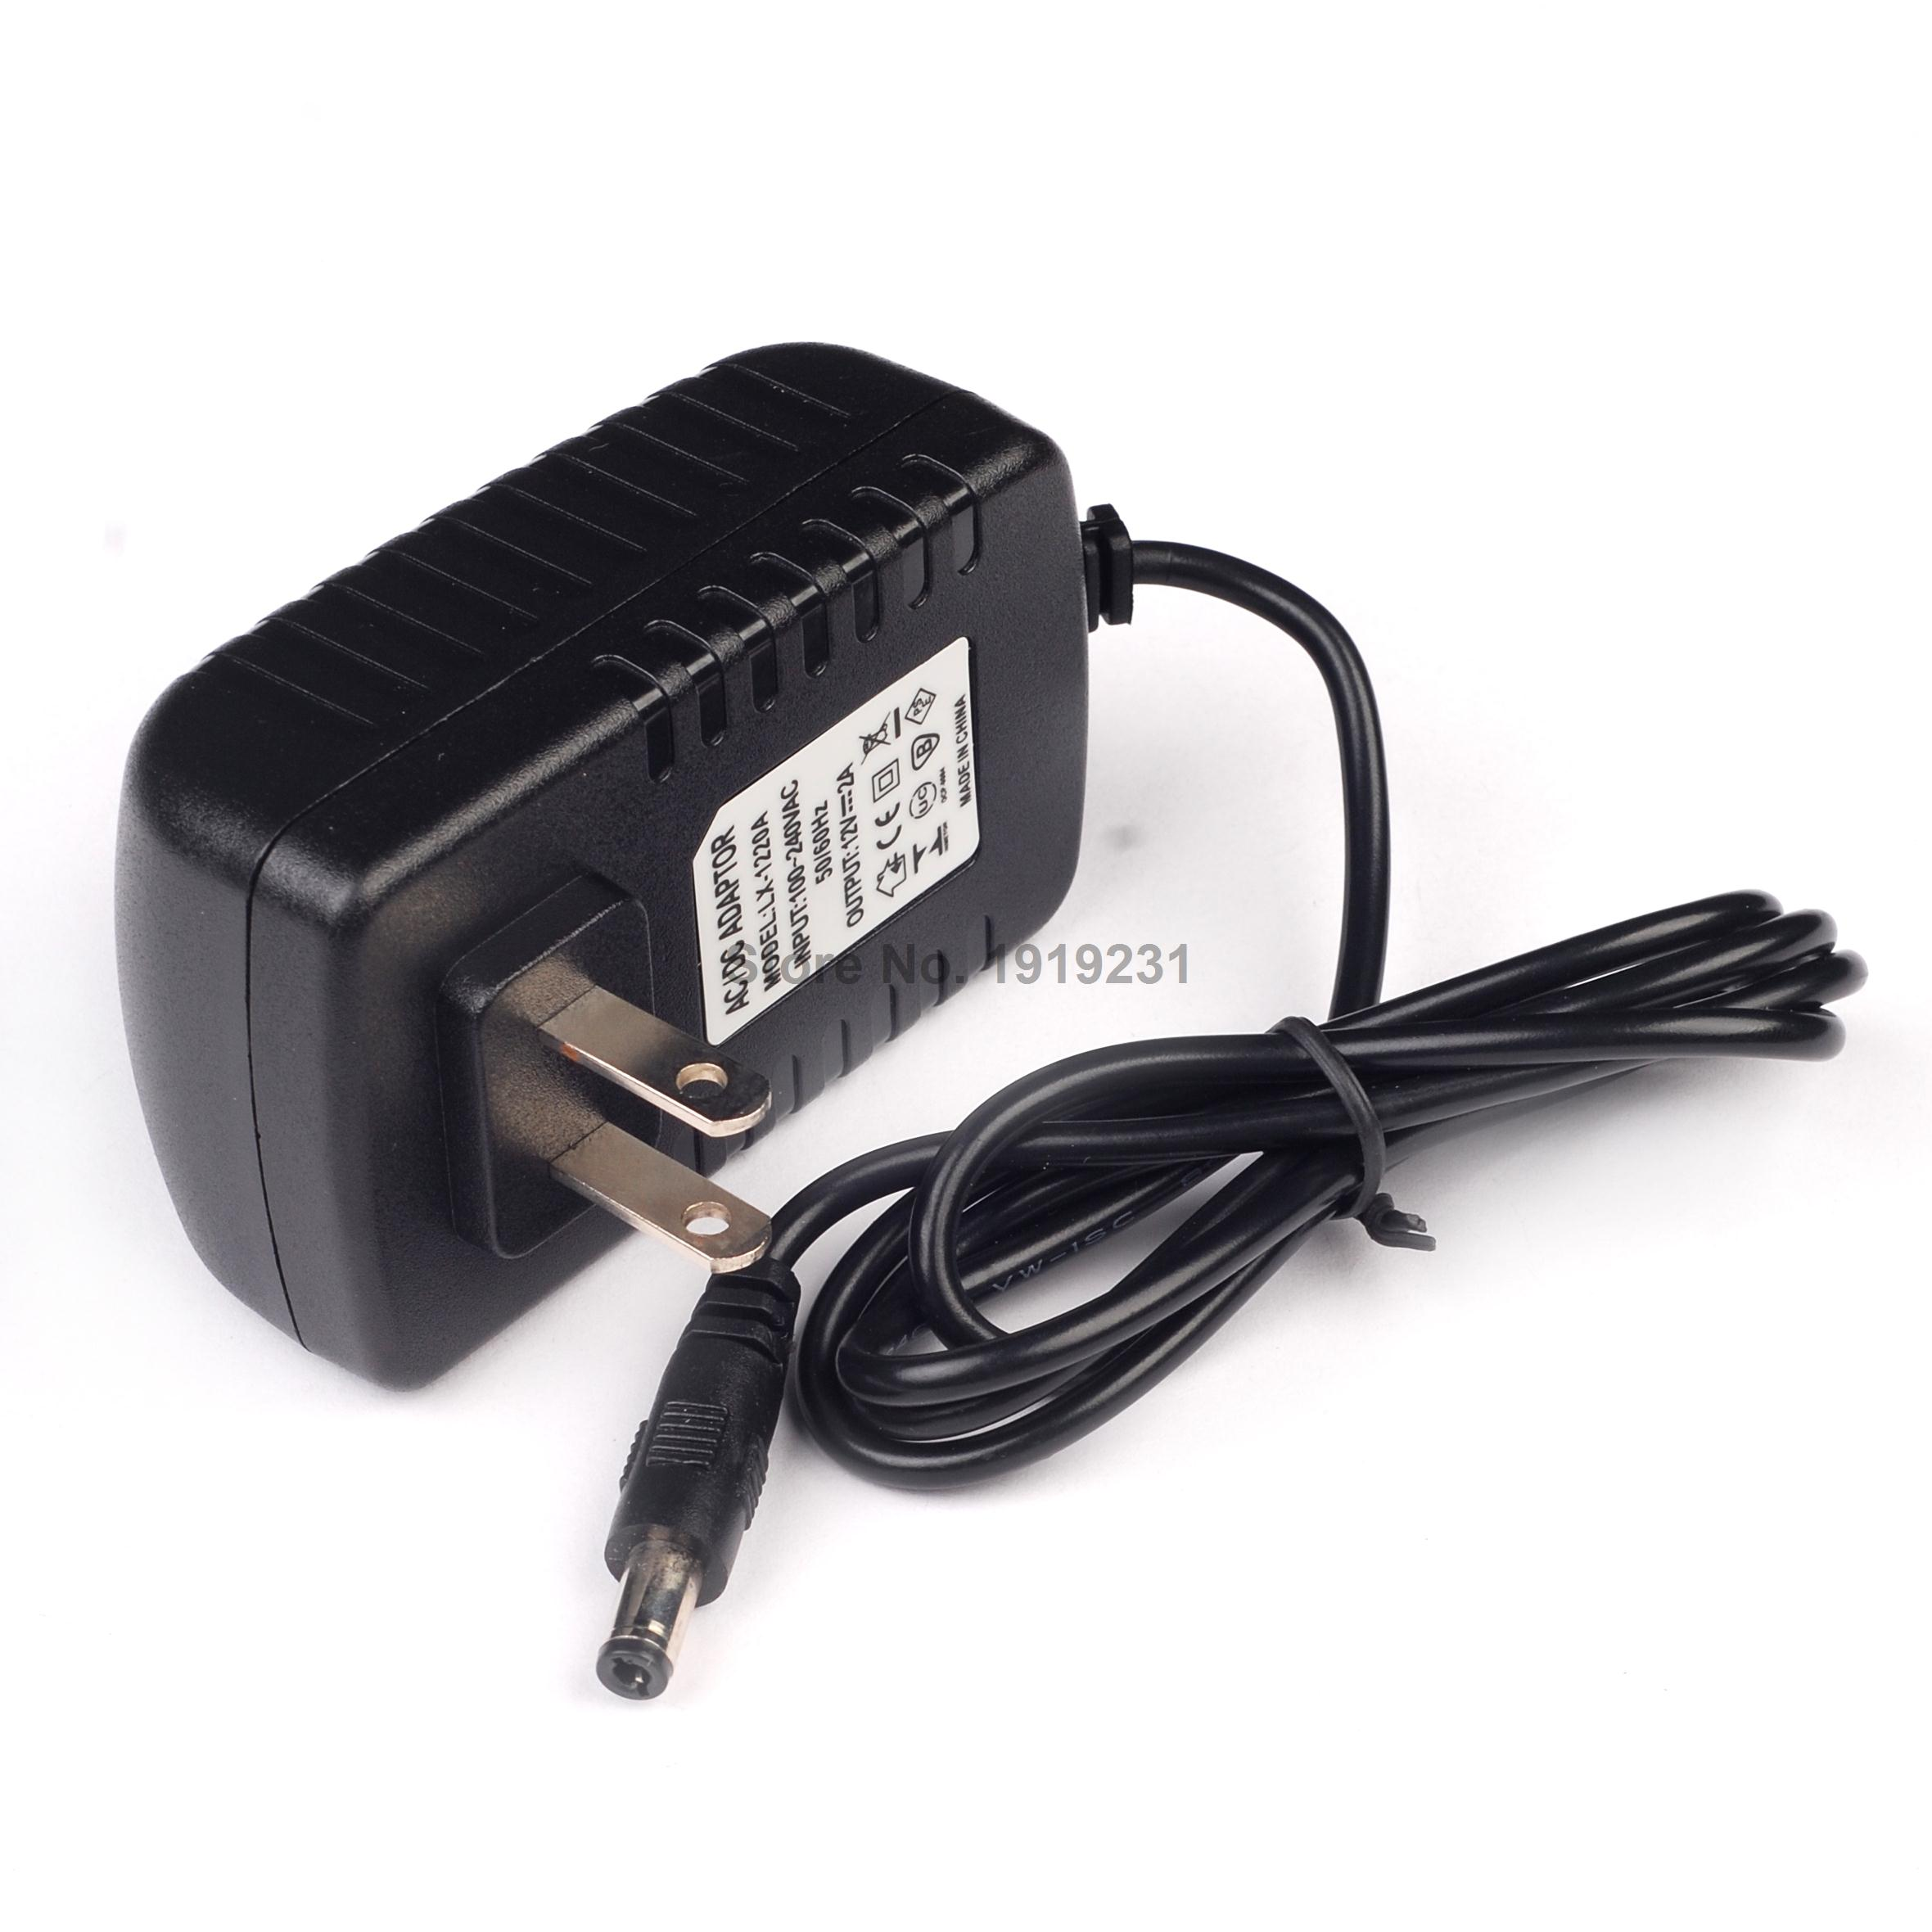 1PCS/AC 100V-240V Converter Adapter DC <font><b>12V</b></font> 2A Power Supply US Plug DC 5.5mm x 2.1mm <font><b>1000mA</b></font> for Arduino UNO MEGA image